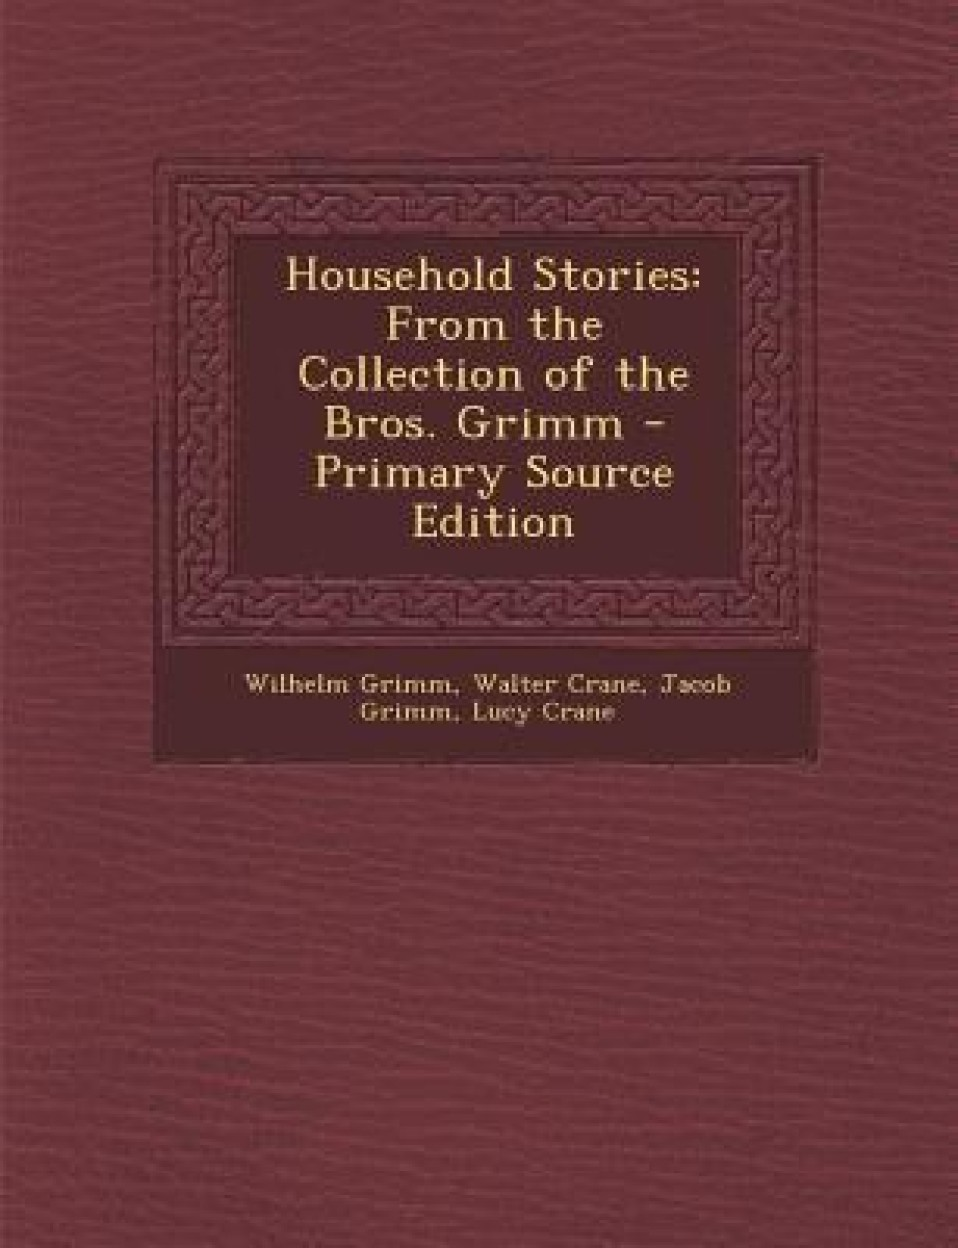 Household Stories: From the Collection of the Bros. Grimm